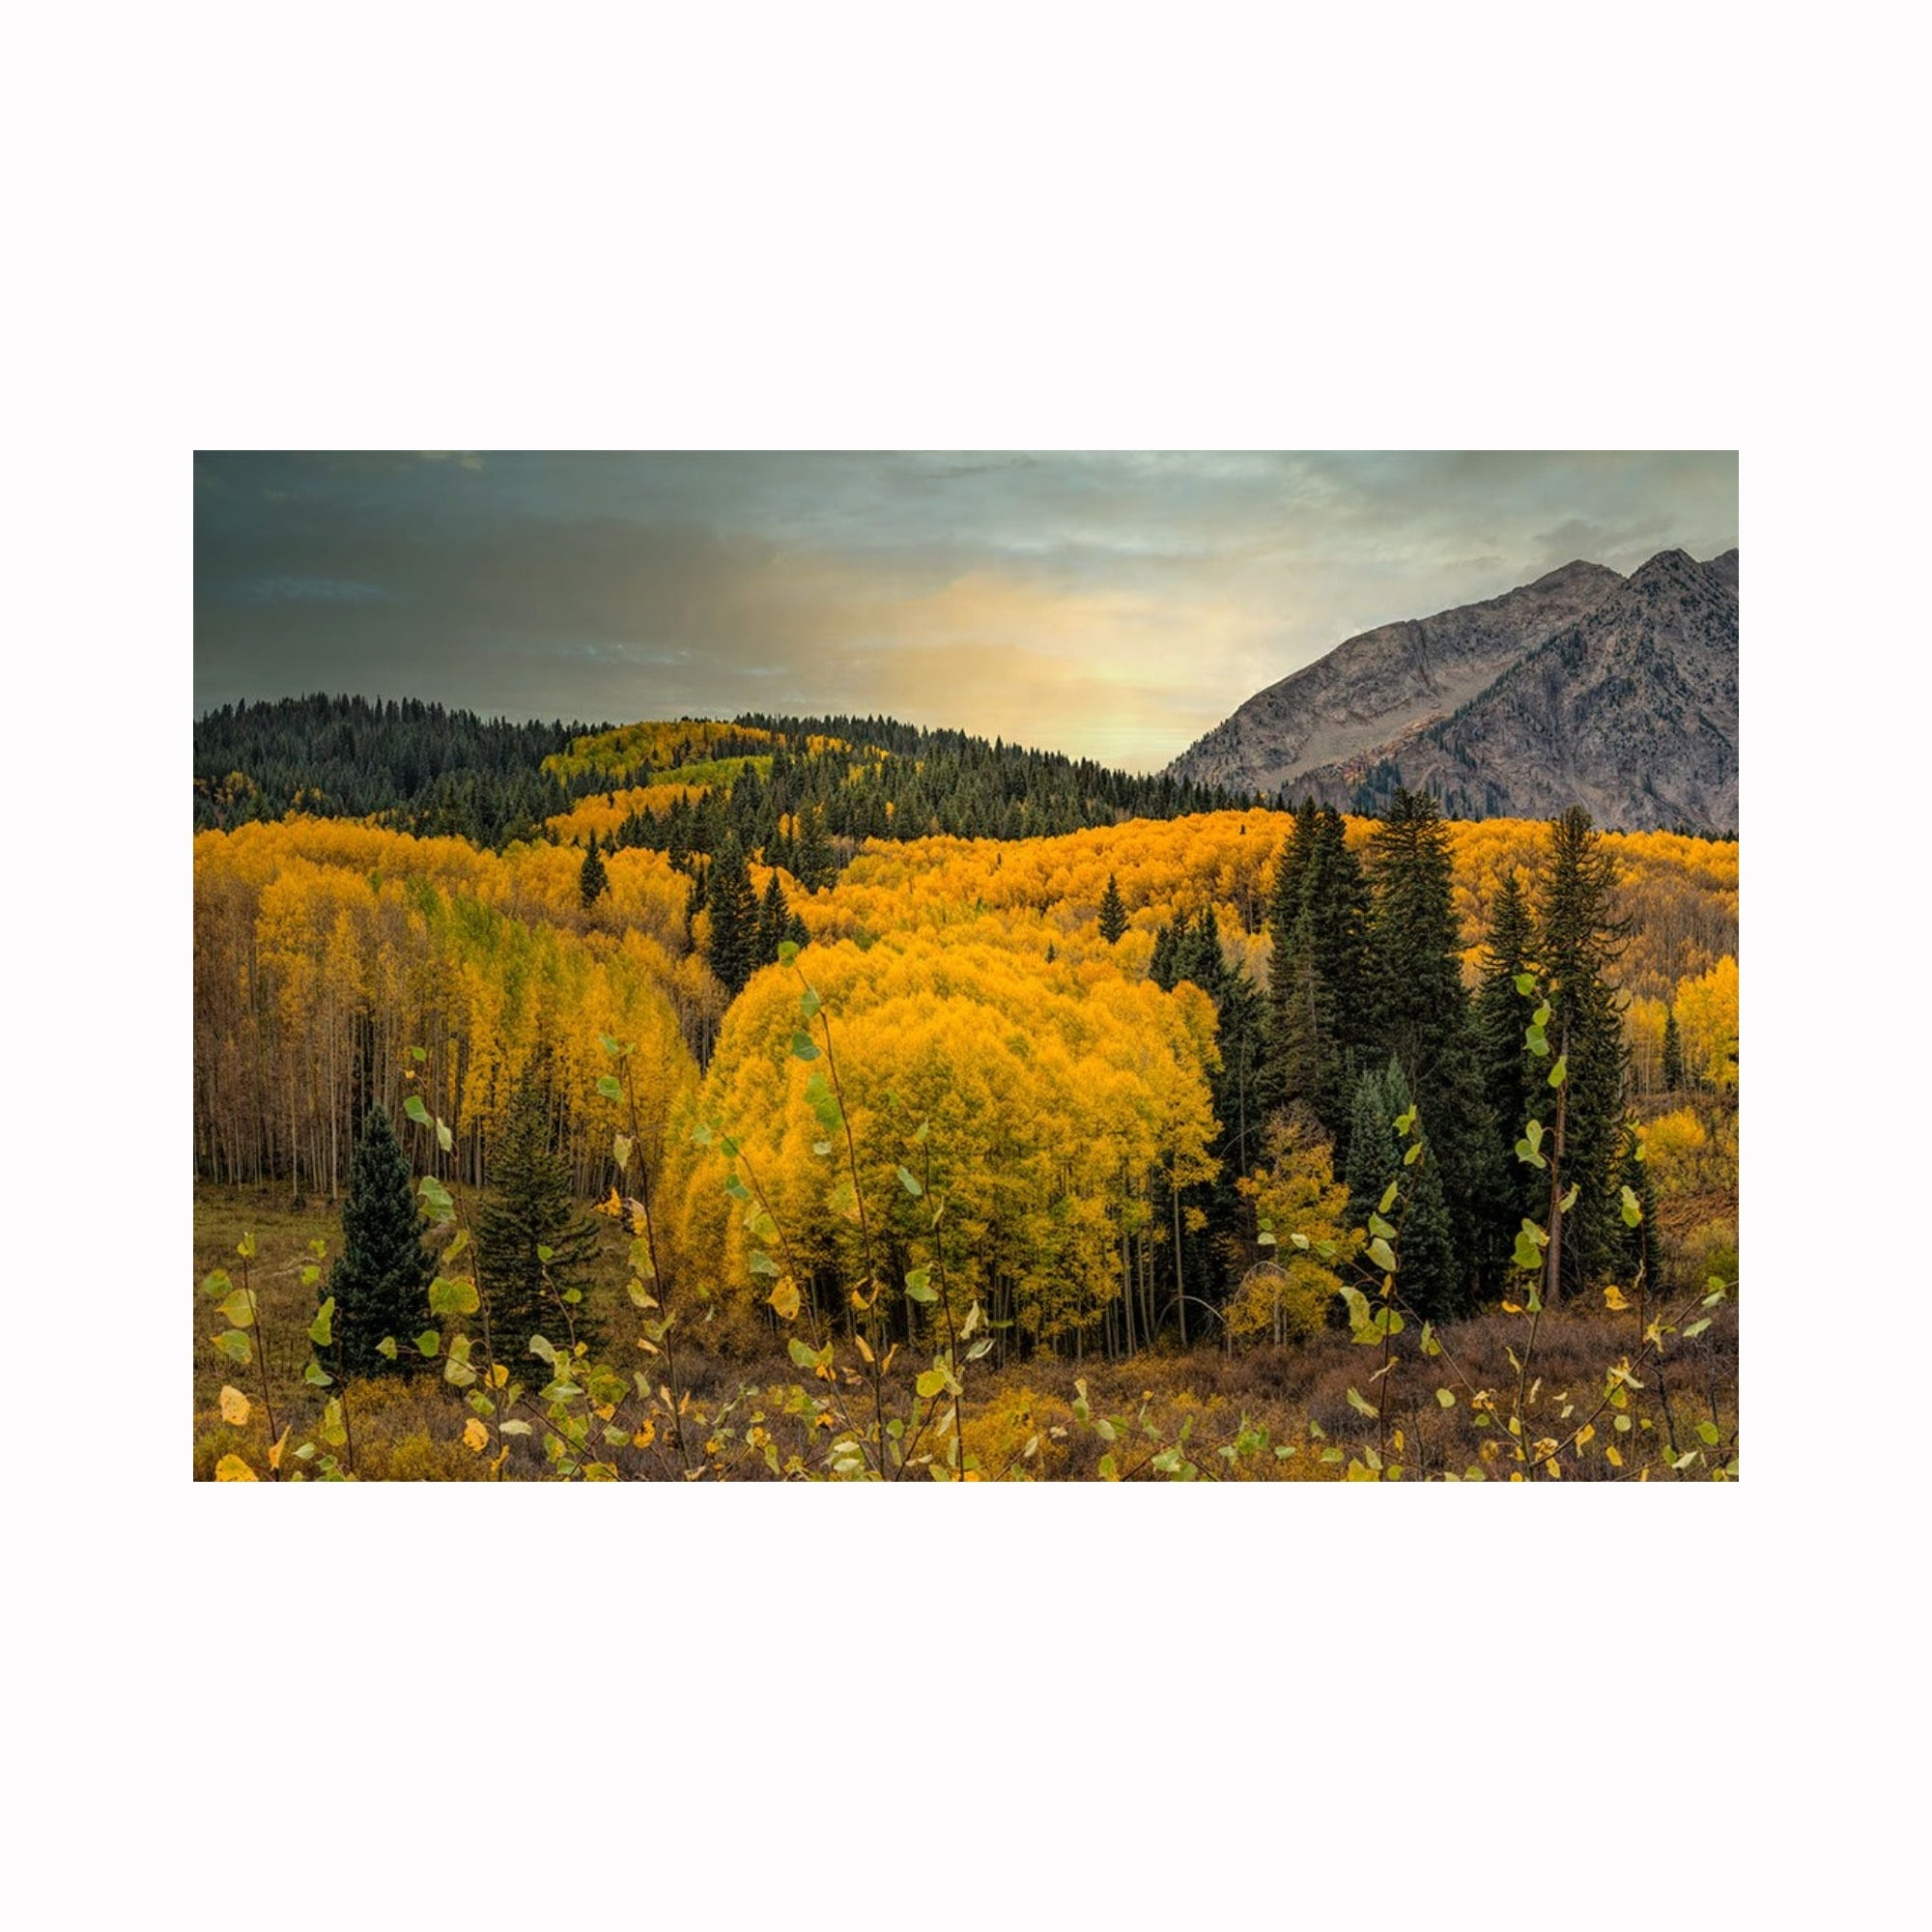 """Aspen Stand Near Crested Butte"" by Texas photographer Mark Holly 